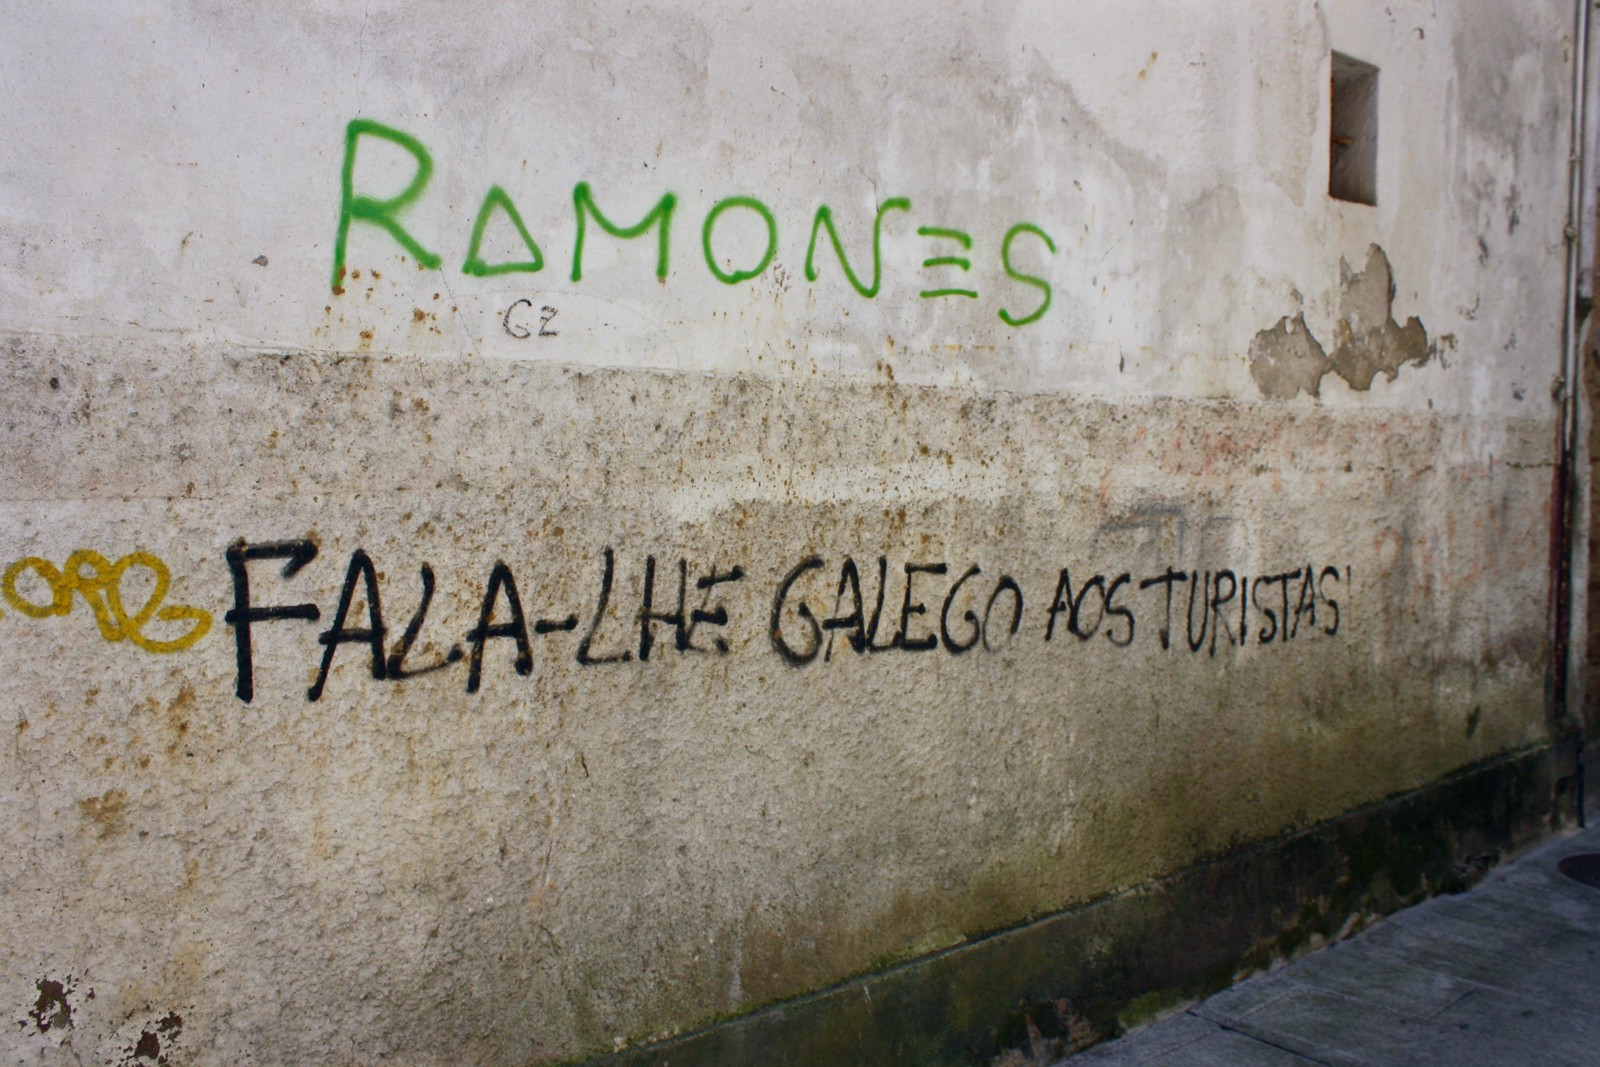 Anti-tourist graffiti in Noia